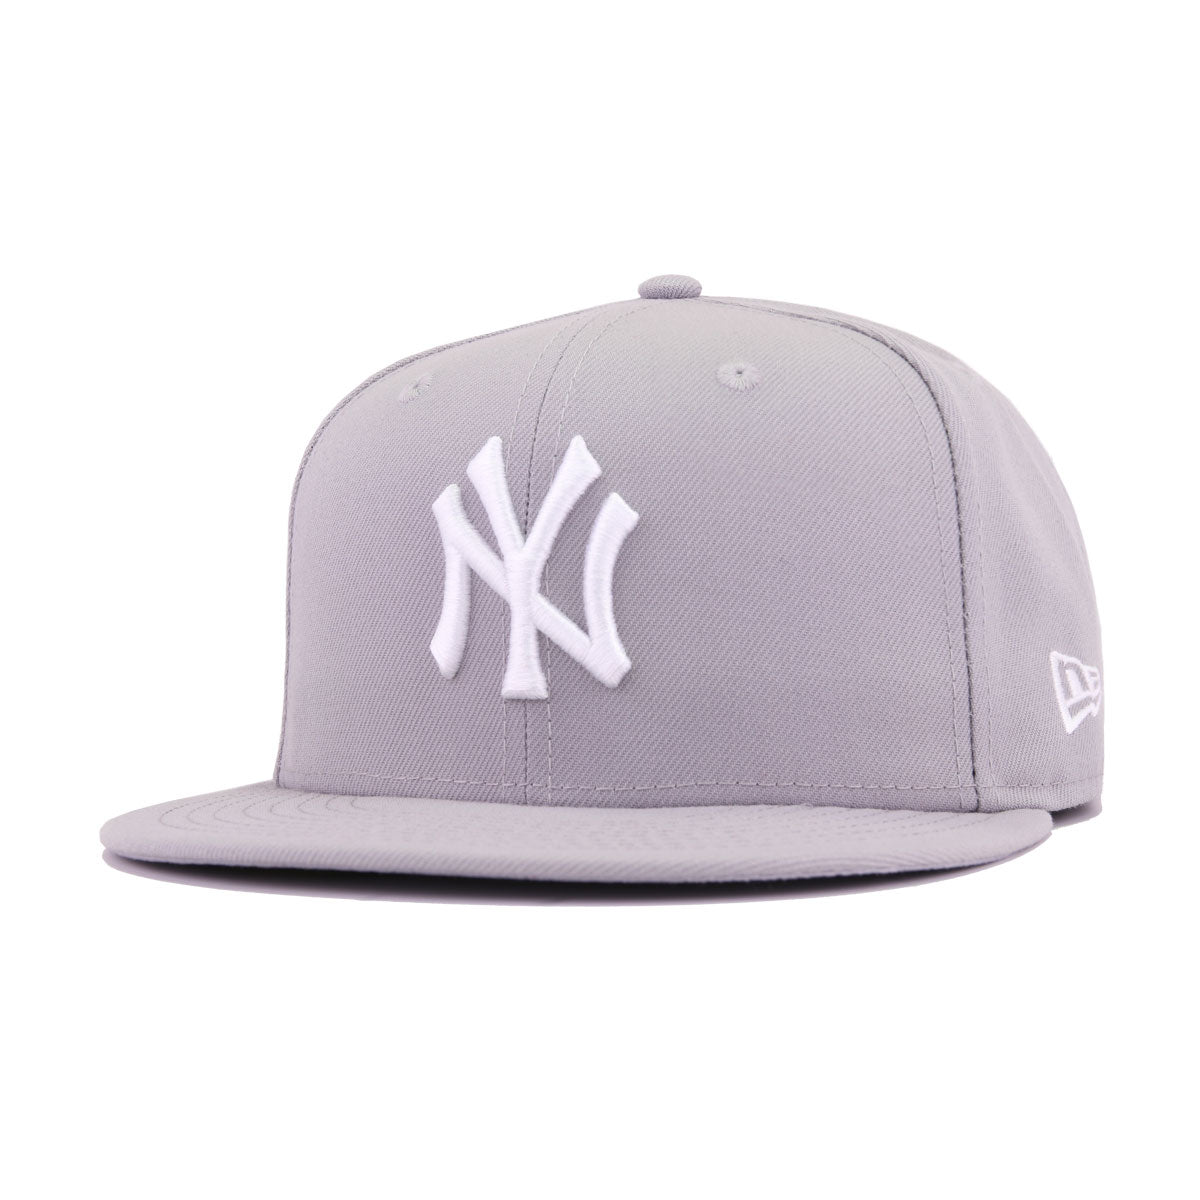 New York Yankees Grey New Era 59Fifty Fitted